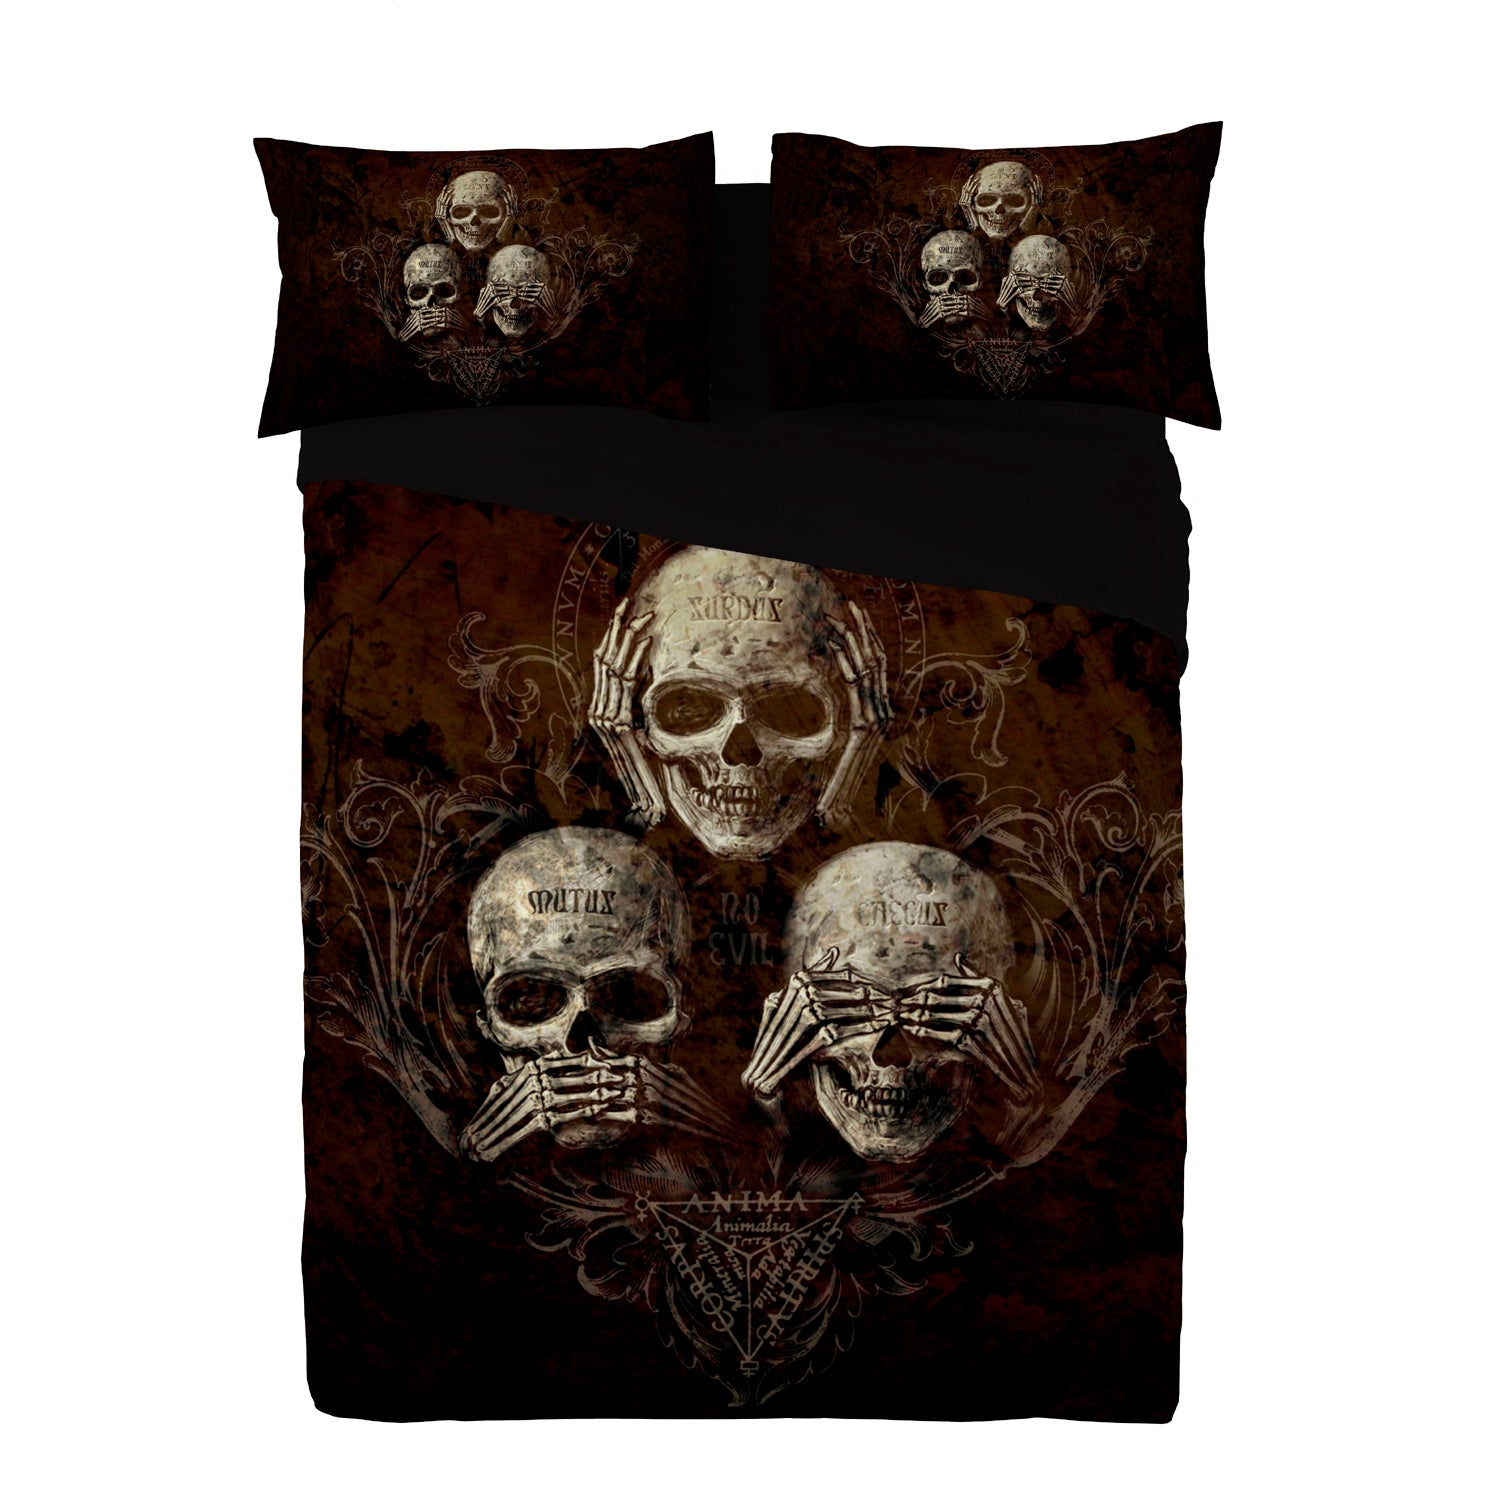 NO EVIL Duvet and Pillows Covers Set